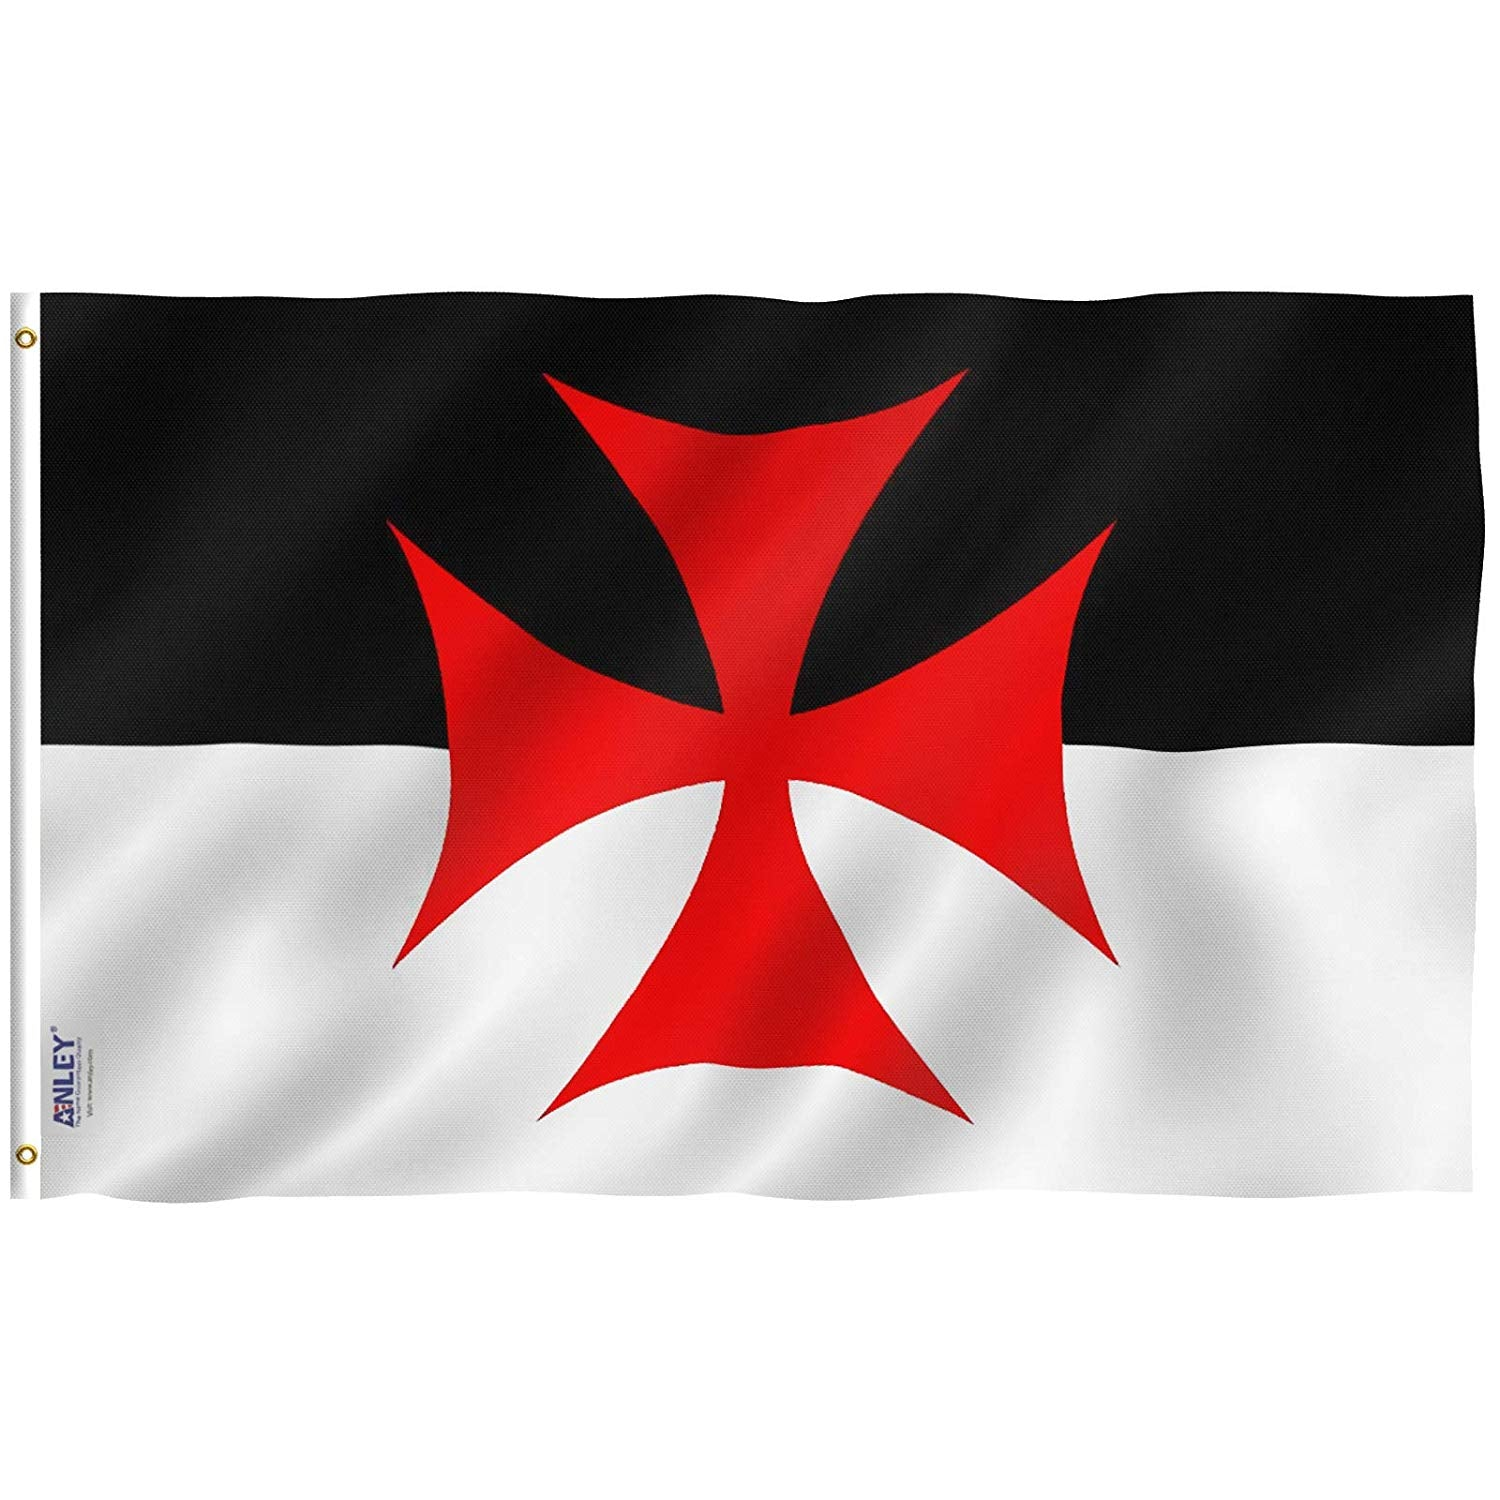 Knights Templar Battle Flag - SolomonsOrder